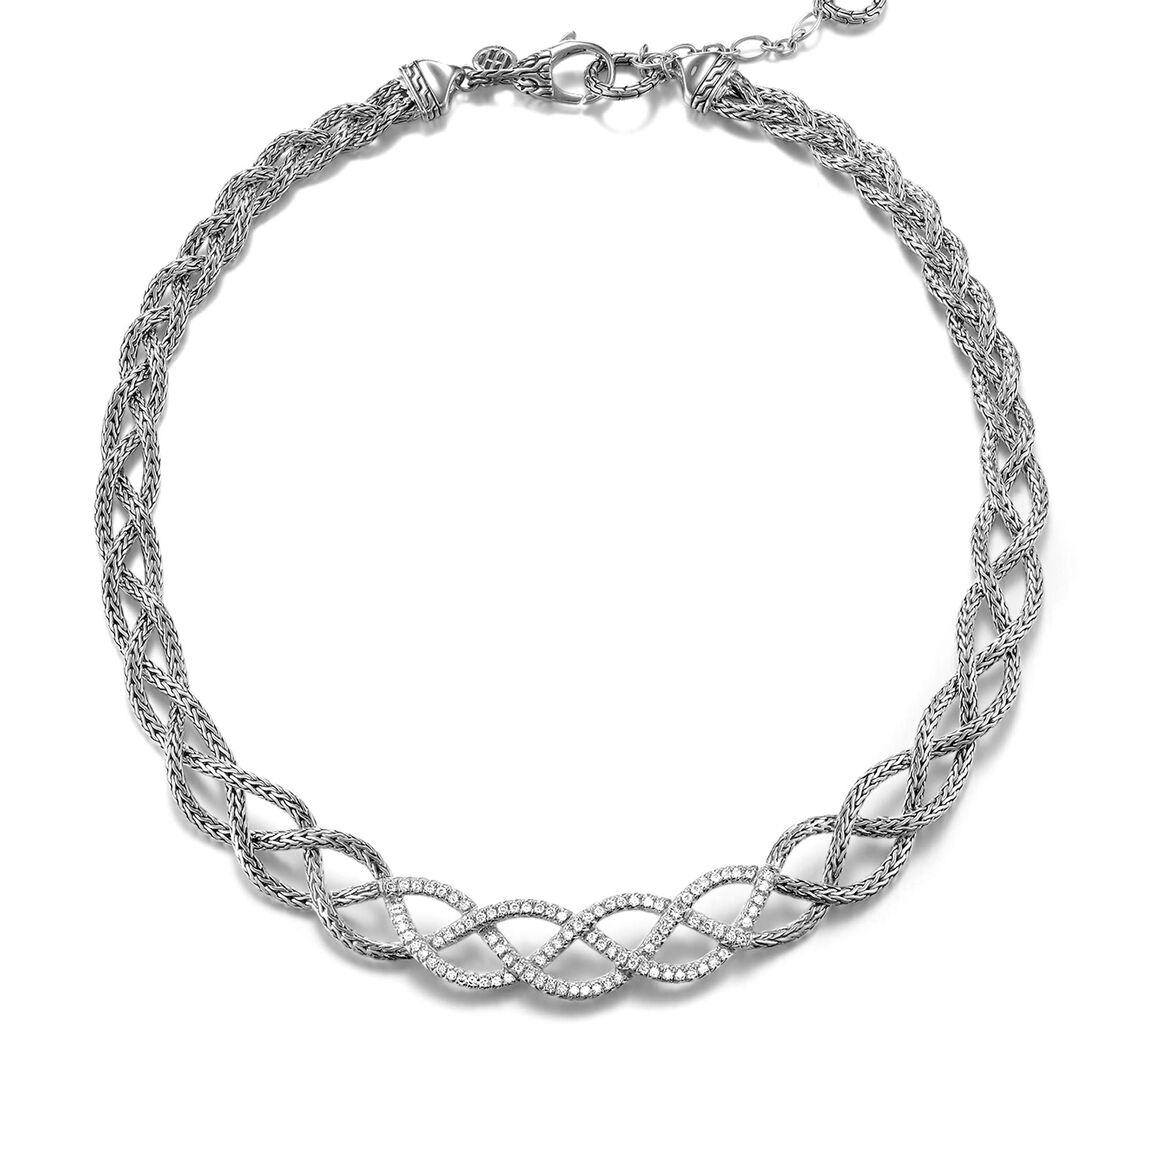 Braided Chain 13MM Necklace in Silver